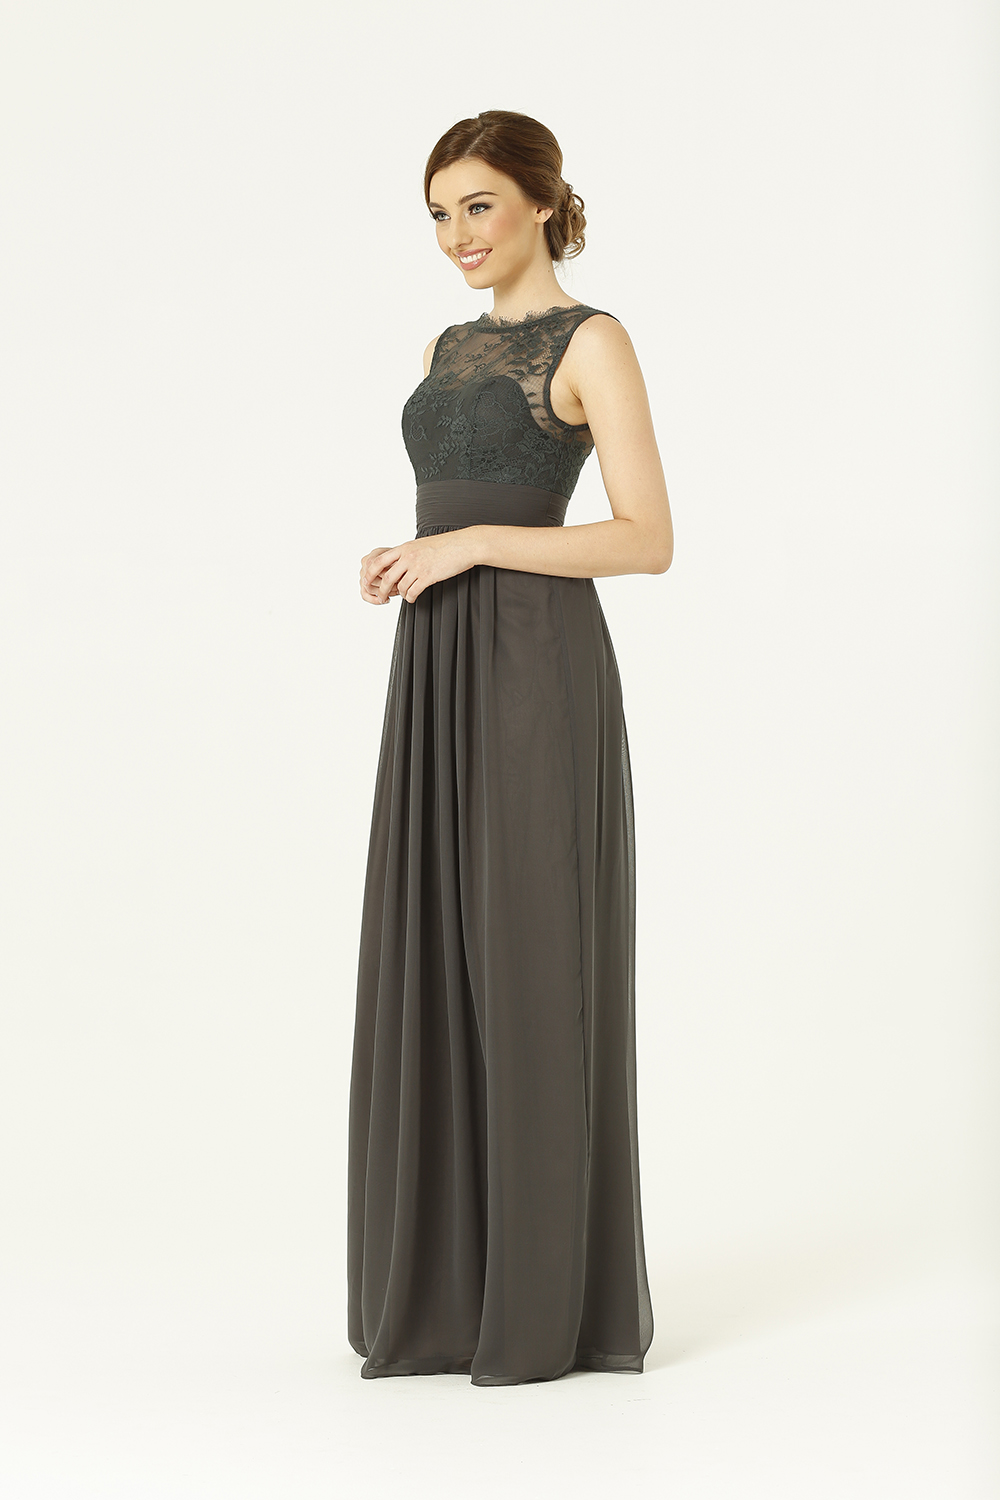 PO34 Charlotte Bridesmaids Dress - end of dye lot charcoal